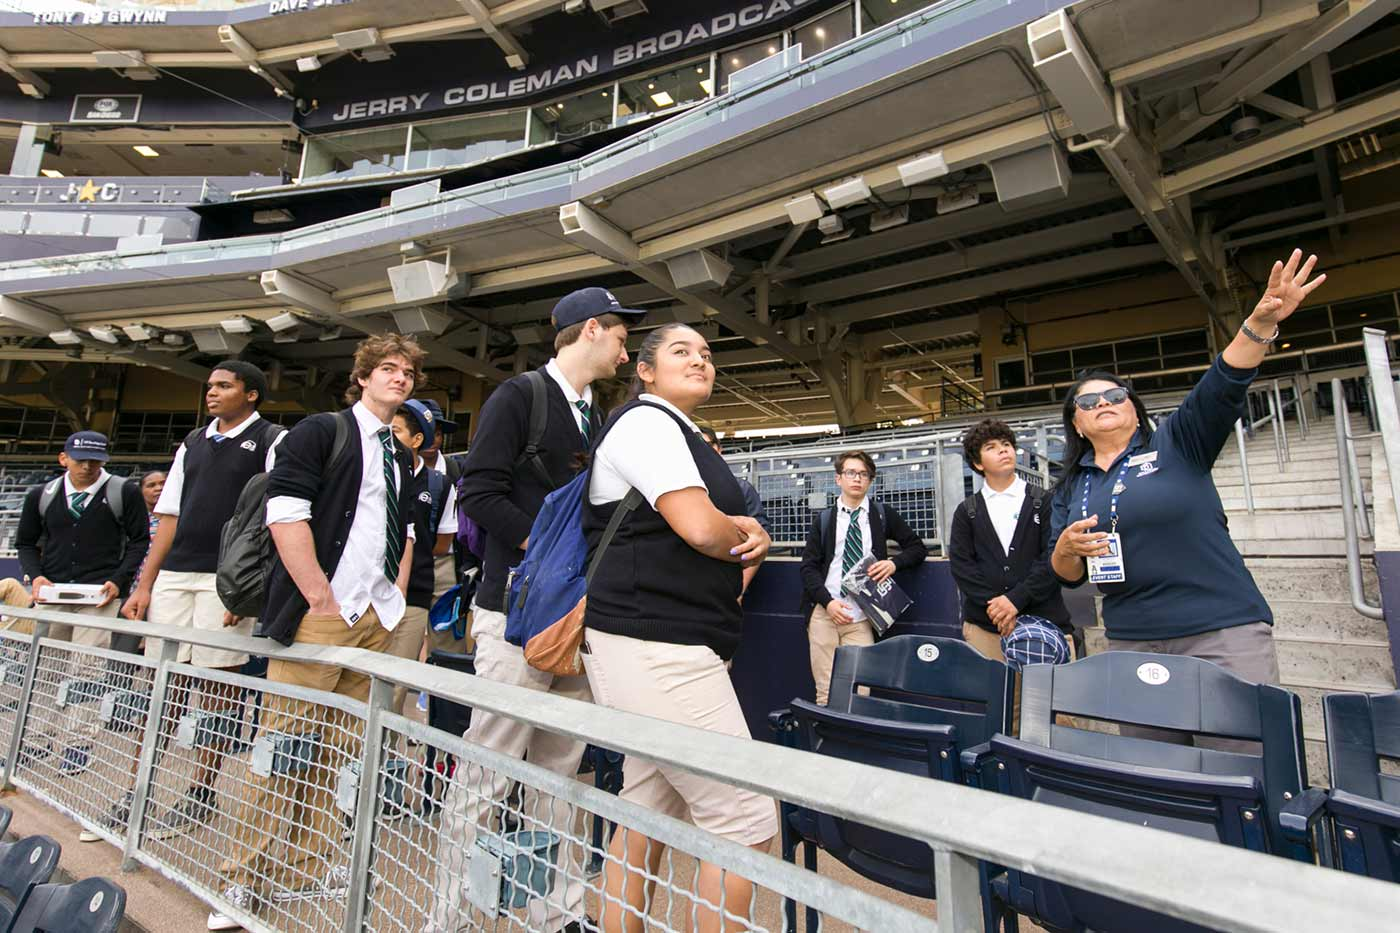 e3 Civic High scholars tour of Petco Park